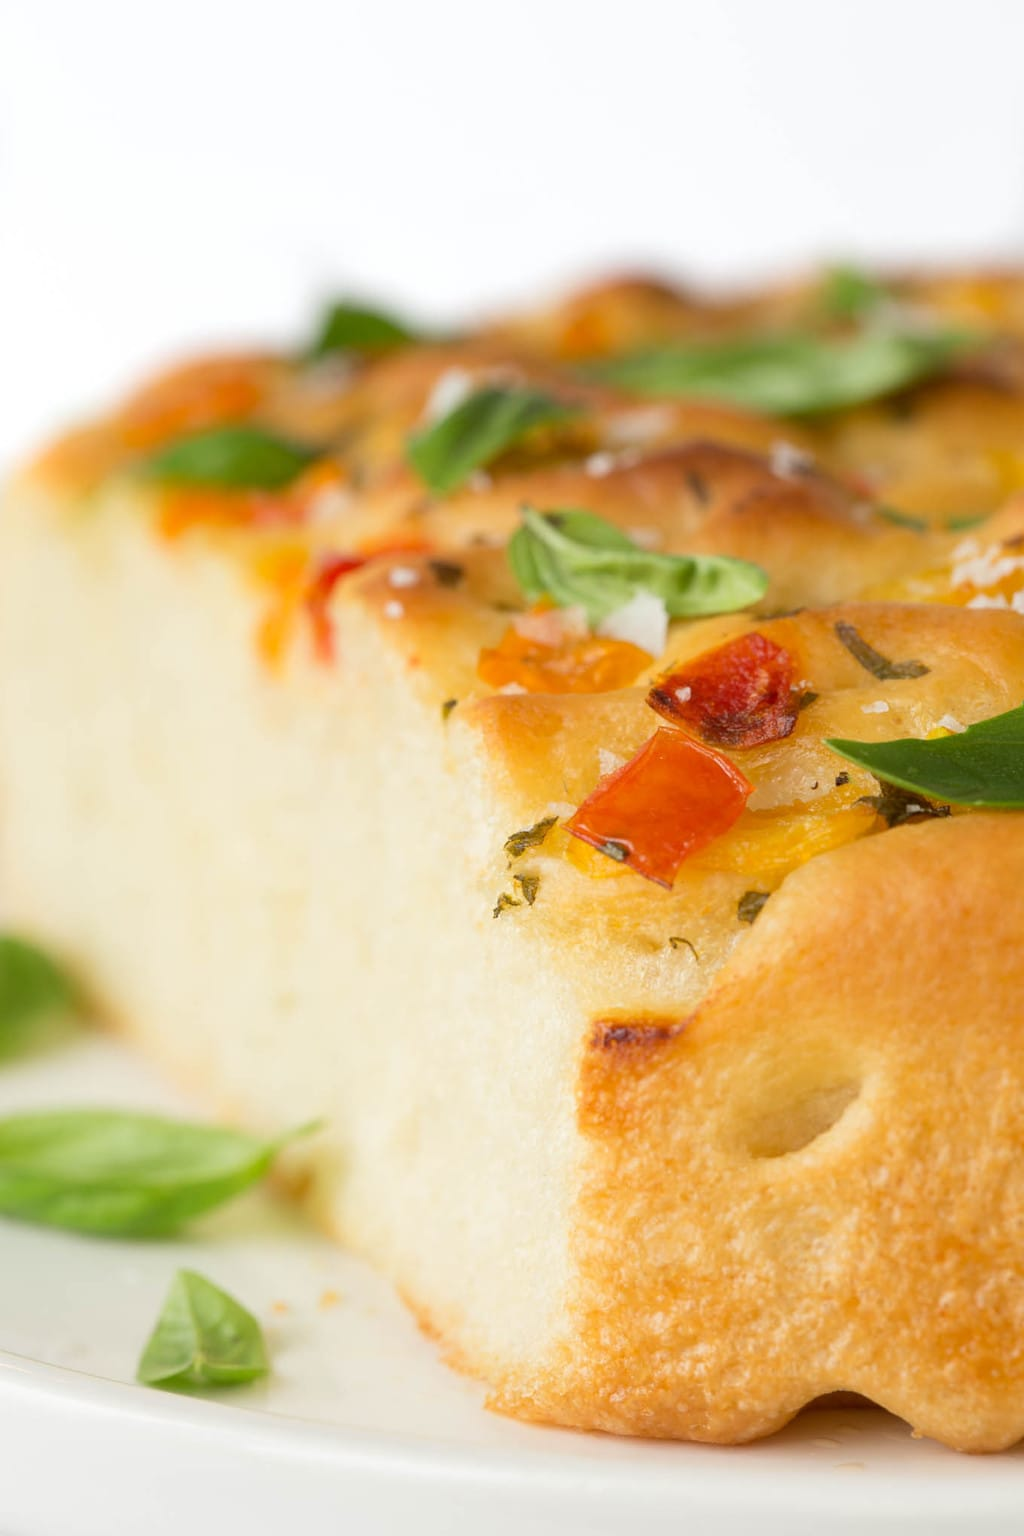 Tomato Basil Parmesan Focaccia - this Italian-inspired bread may just be one of the most delicious things you ever put in your mouth! thecafesucrefarine.com